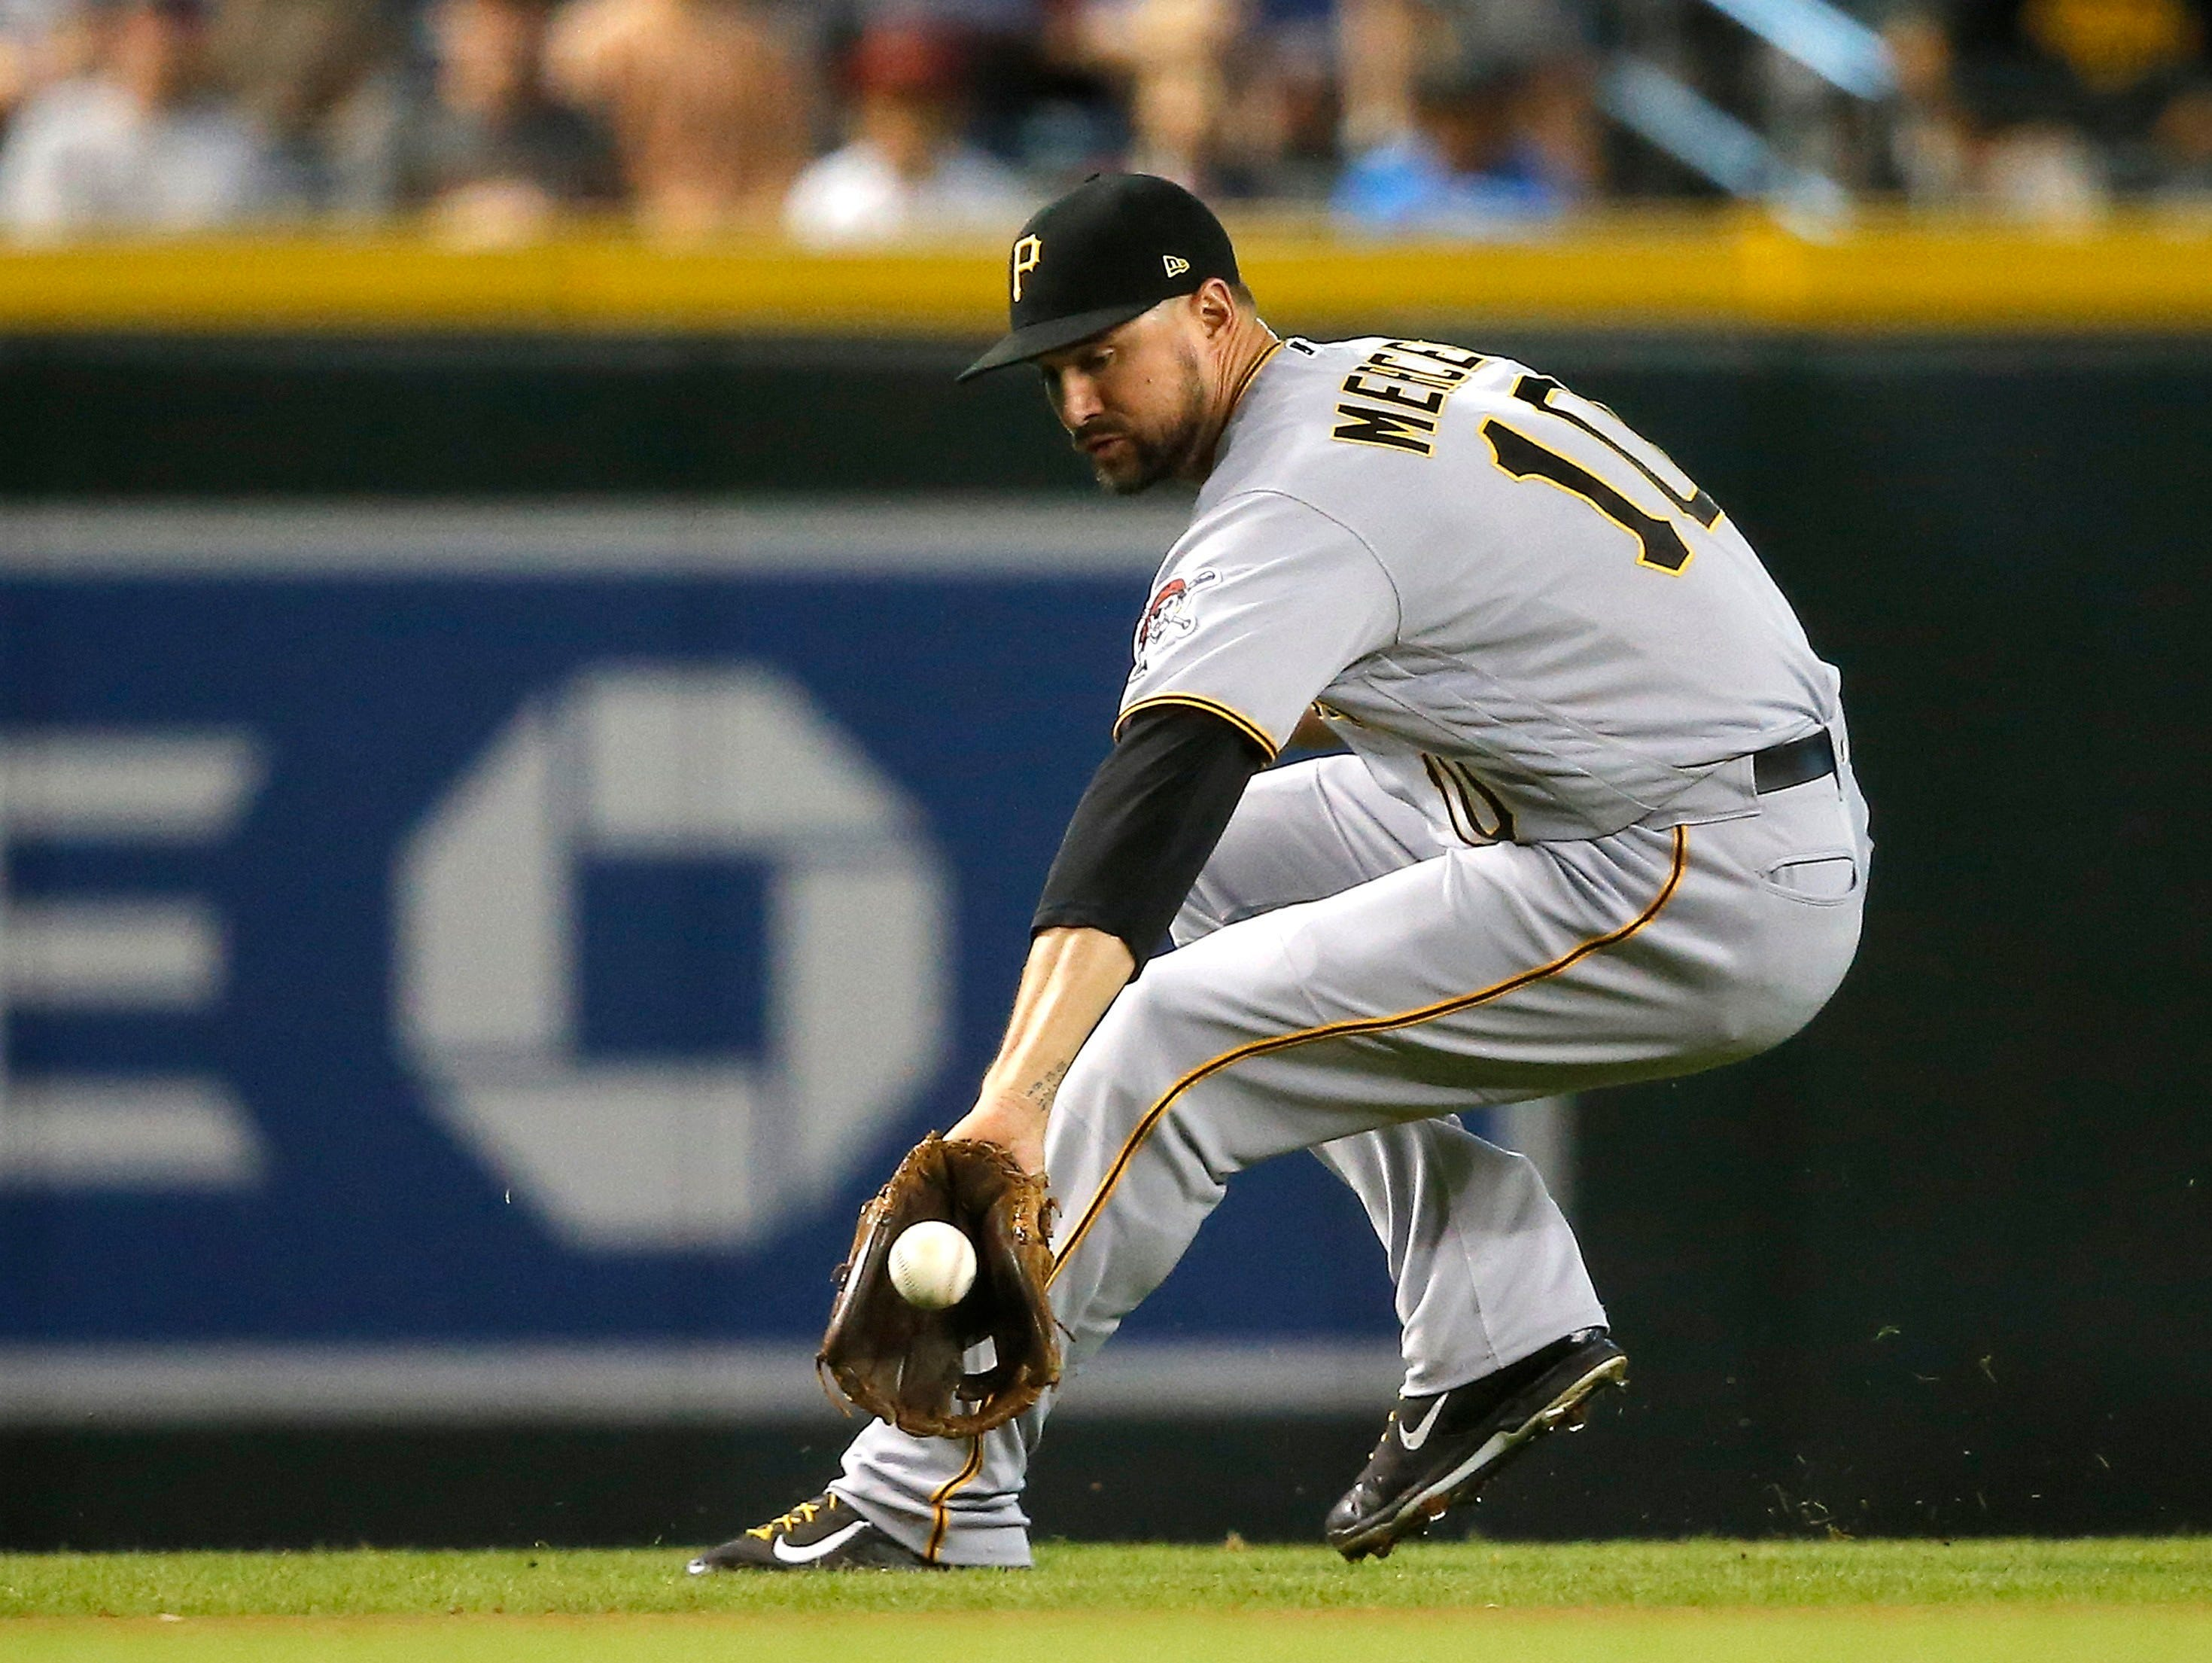 Pittsburgh Pirates' Jordy Mercer backhands a grounder during the first inning of a game against the Arizona Diamondbacks Wednesday, June 13, 2018, in Phoenix.